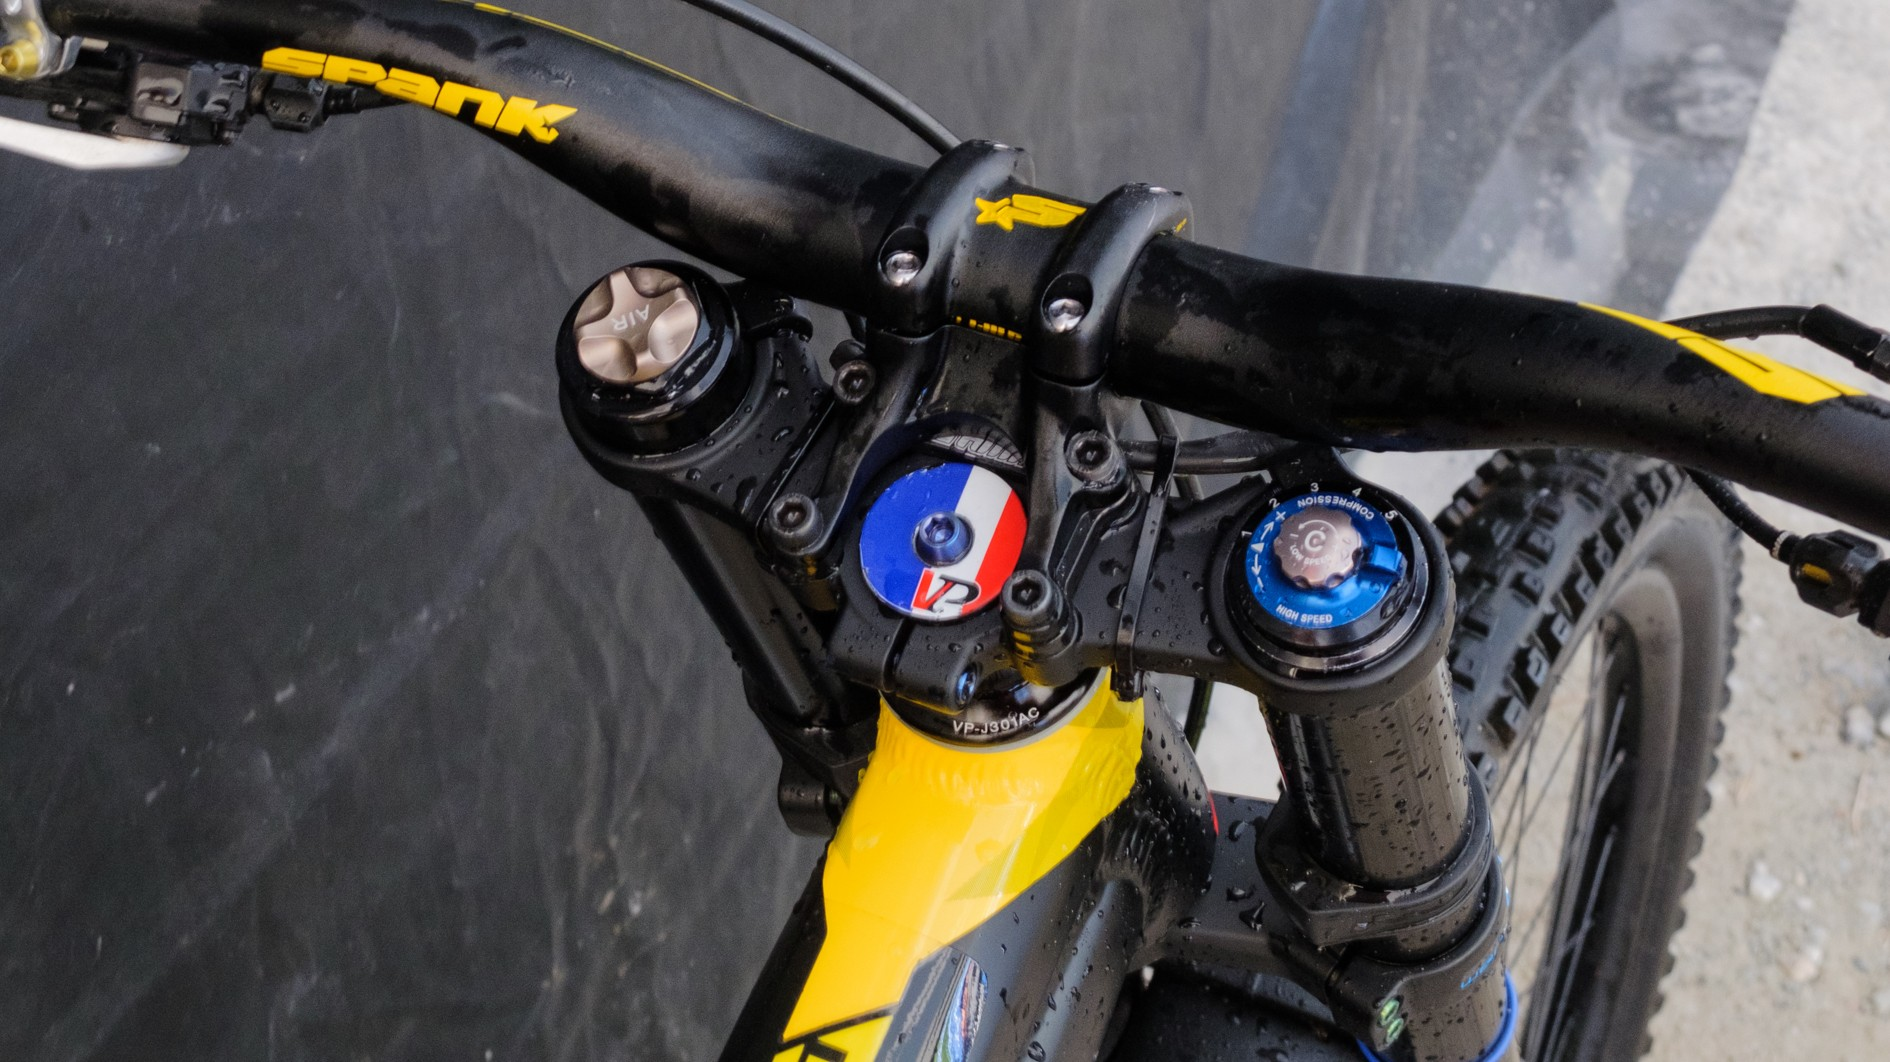 A little reminder of home for the French rider